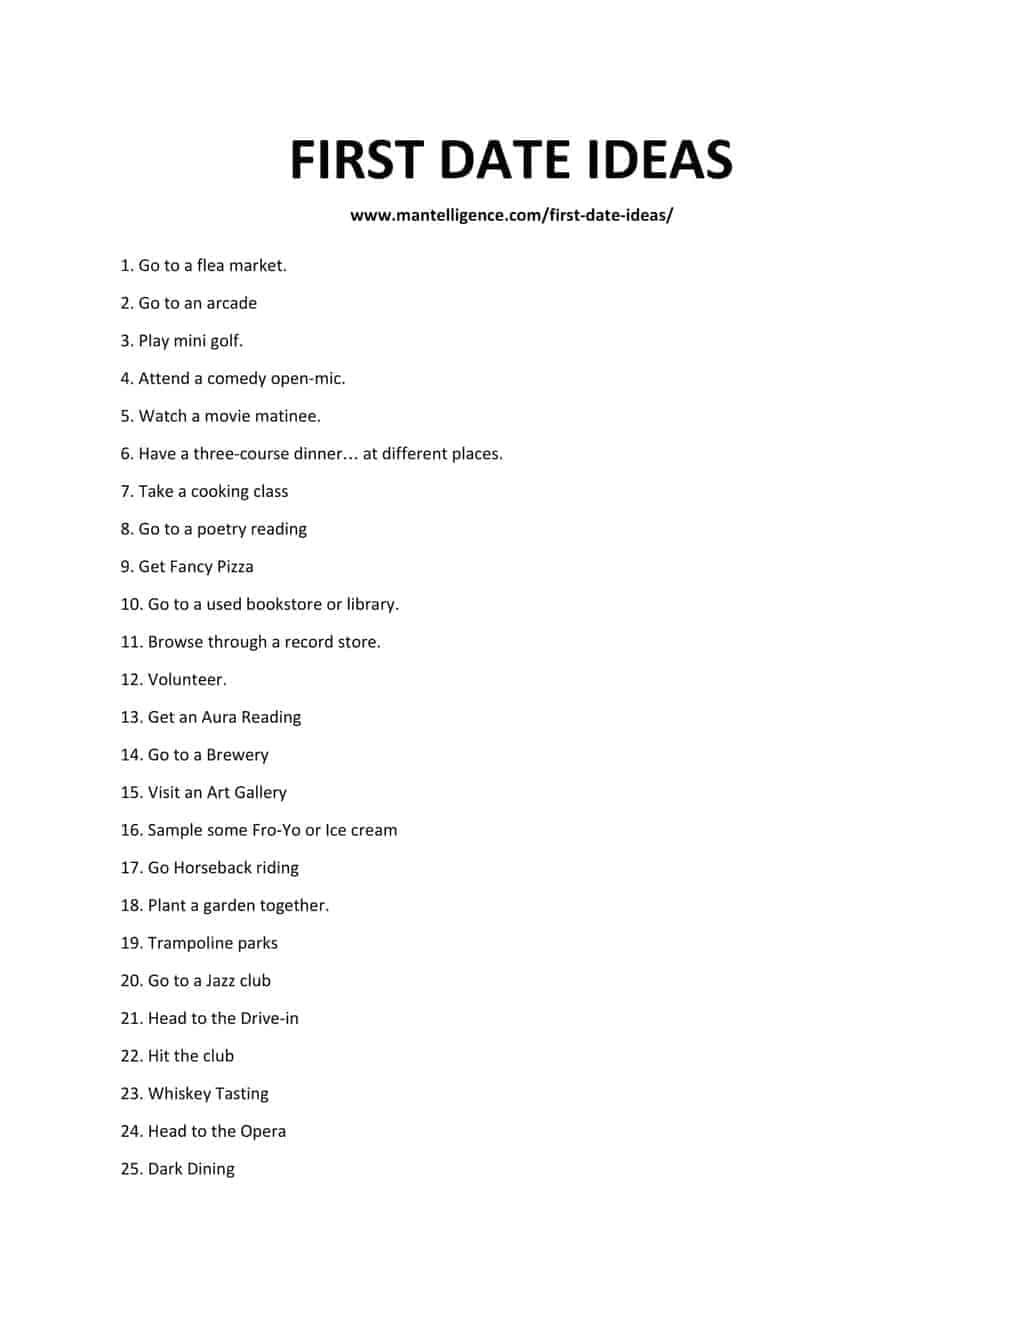 Downloadable list of first date ideas